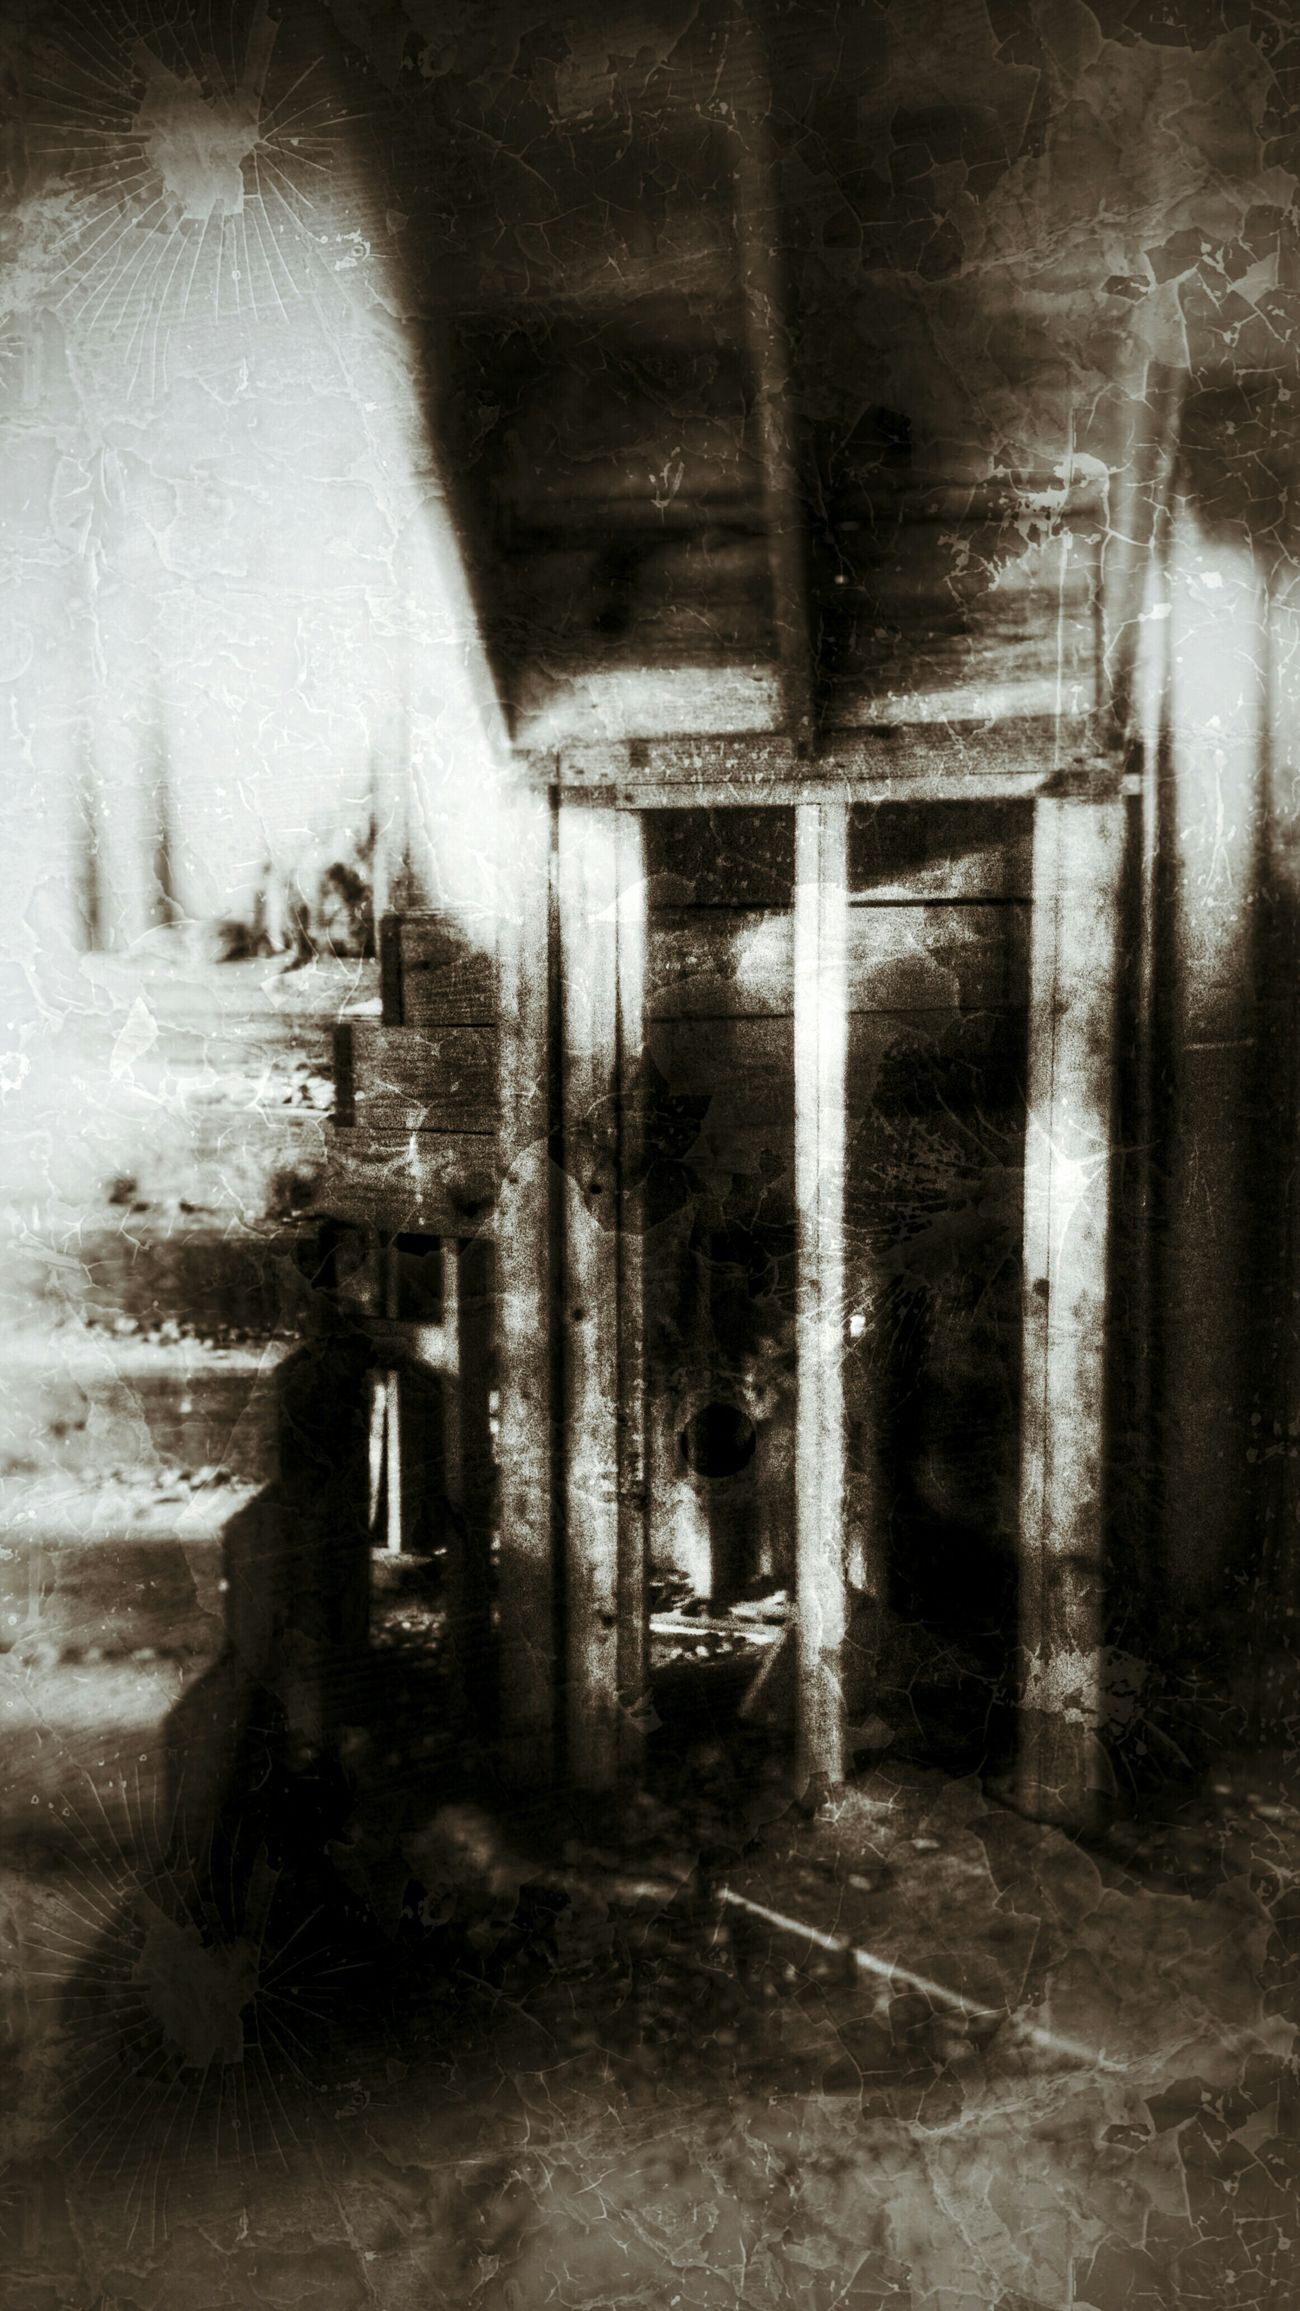 Eyeemphotography Eeyemgallery Desolated Perfection Twisted Dream EyeEmTexas Photography Lostplaces In The Middle Of Nowhere North Texas Abandoned House EyeEm Gallery Getting Creative